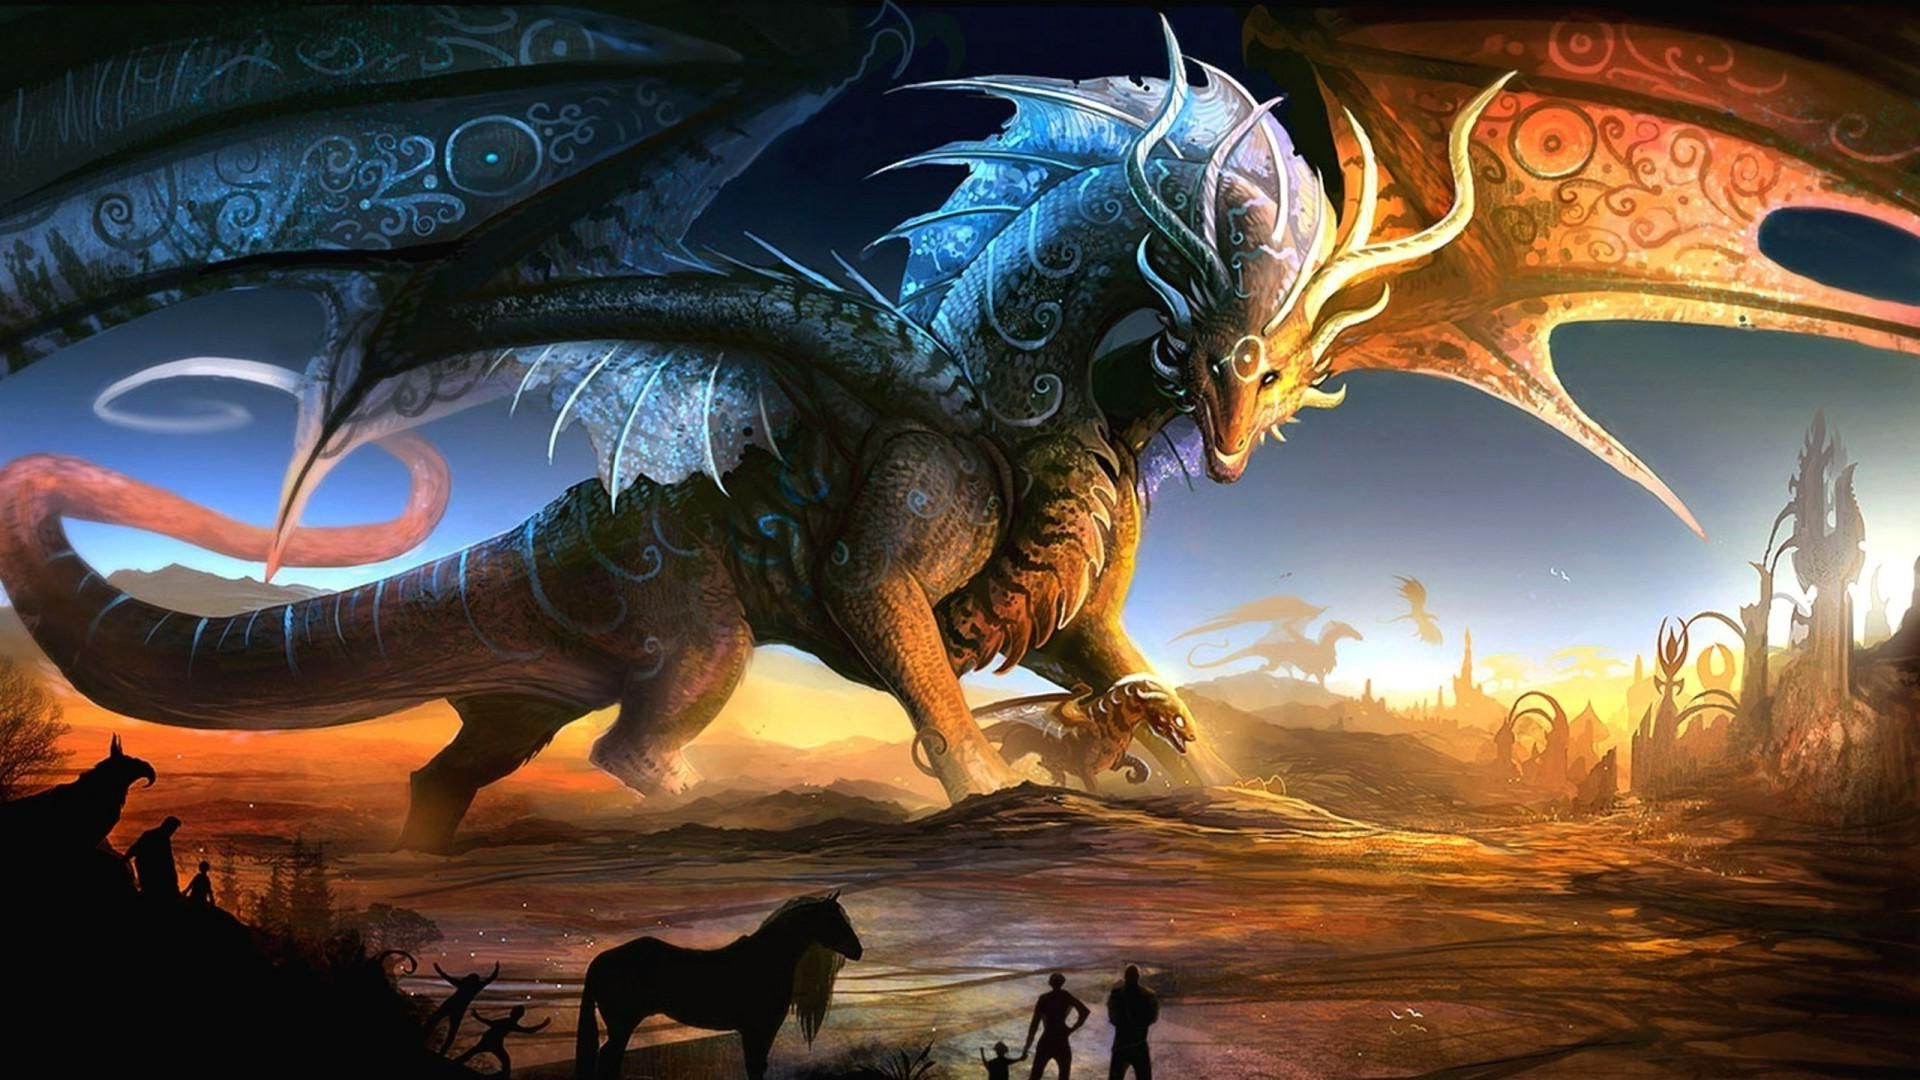 3d fantasy dragon 1920x1080 need iphone 6s plus wallpaper dragons pinterest - Dragon wallpaper 3d ...